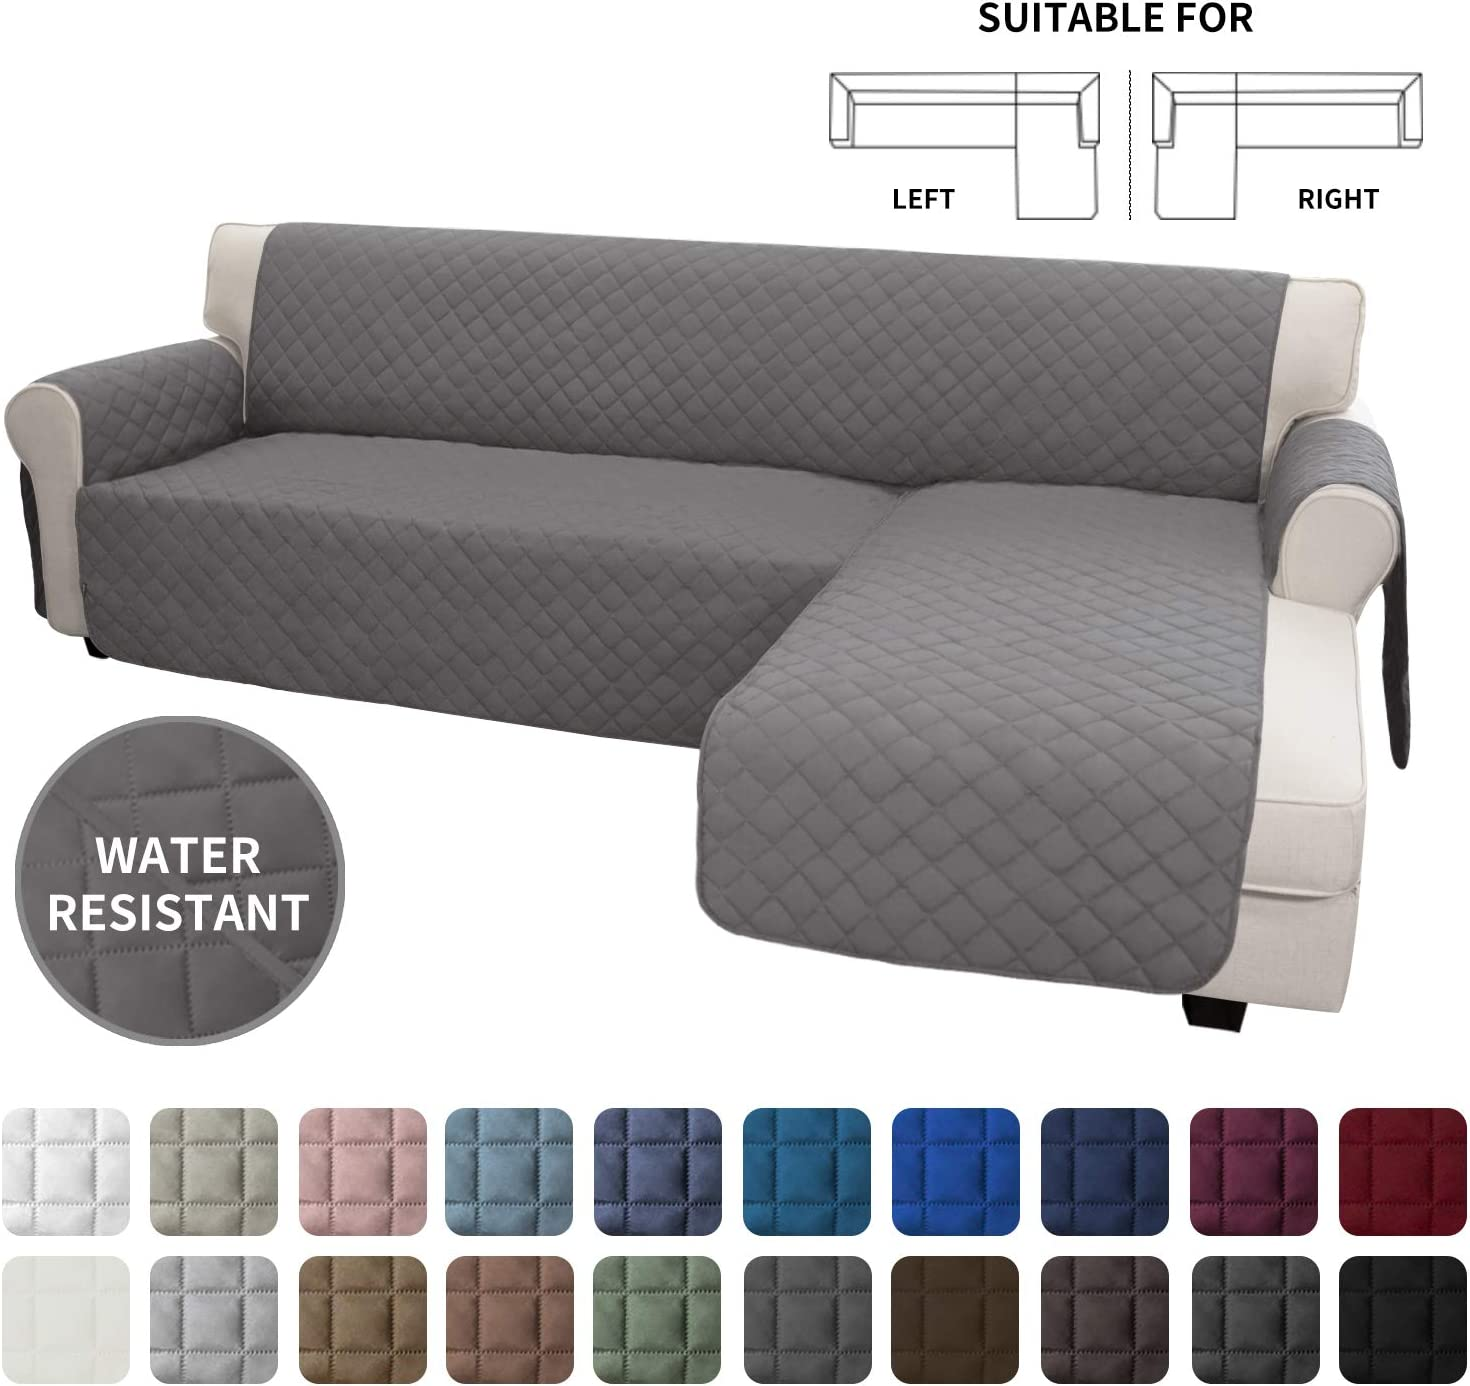 Easy-Going Sofa Slipcover L Shape Sofa Cover Sectional Couch Cover Chaise Lounge Slip Cover Reversible Sofa Cover Furniture Protector Cover for Pets Kids Children Dog Cat (Small,Gray/Gray)